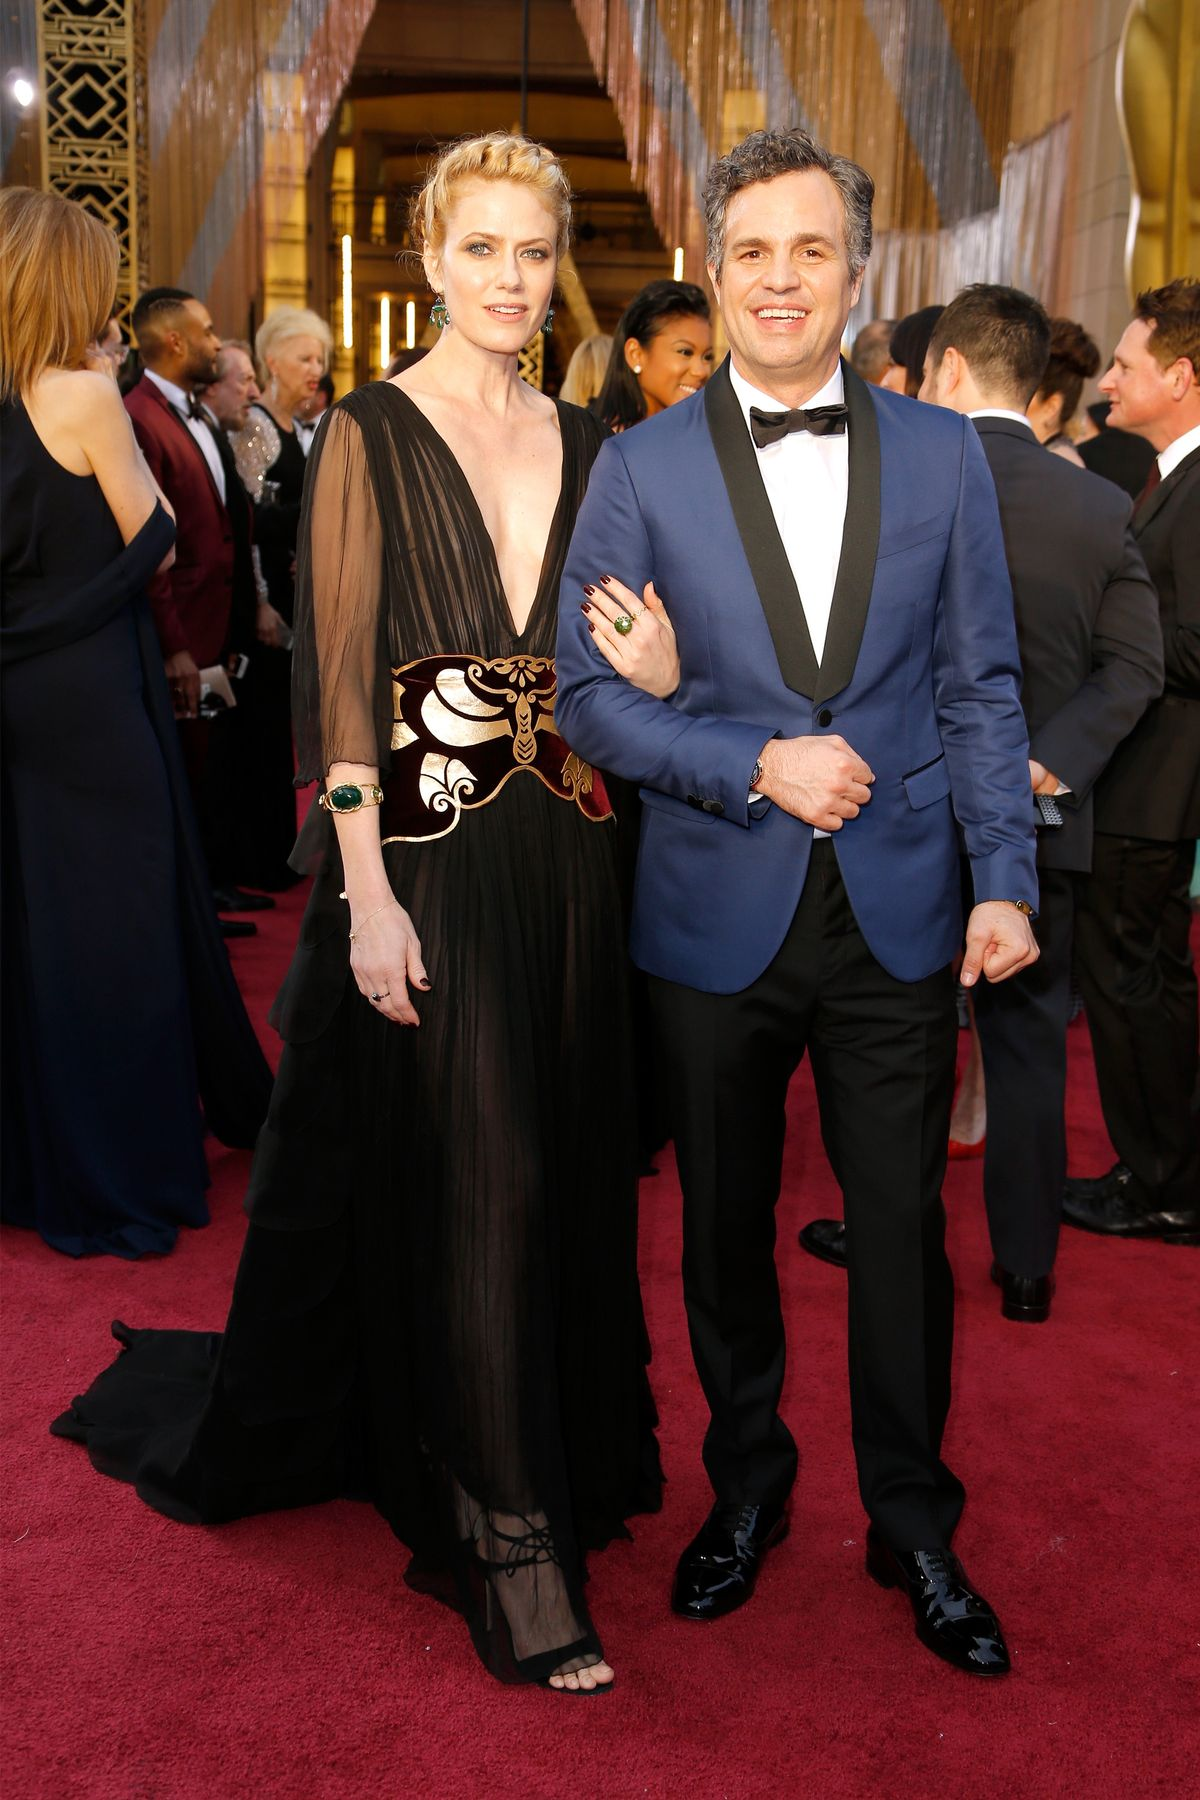 HOLLYWOOD, CA - FEBRUARY 28: Actress Sunrise Coigney (L) and actor Mark Ruffalo attend the 88th Annual Academy Awards at Hollywood & Highland Center on February 28, 2016 in Hollywood, California. (Photo by Jeff Vespa/WireImage)